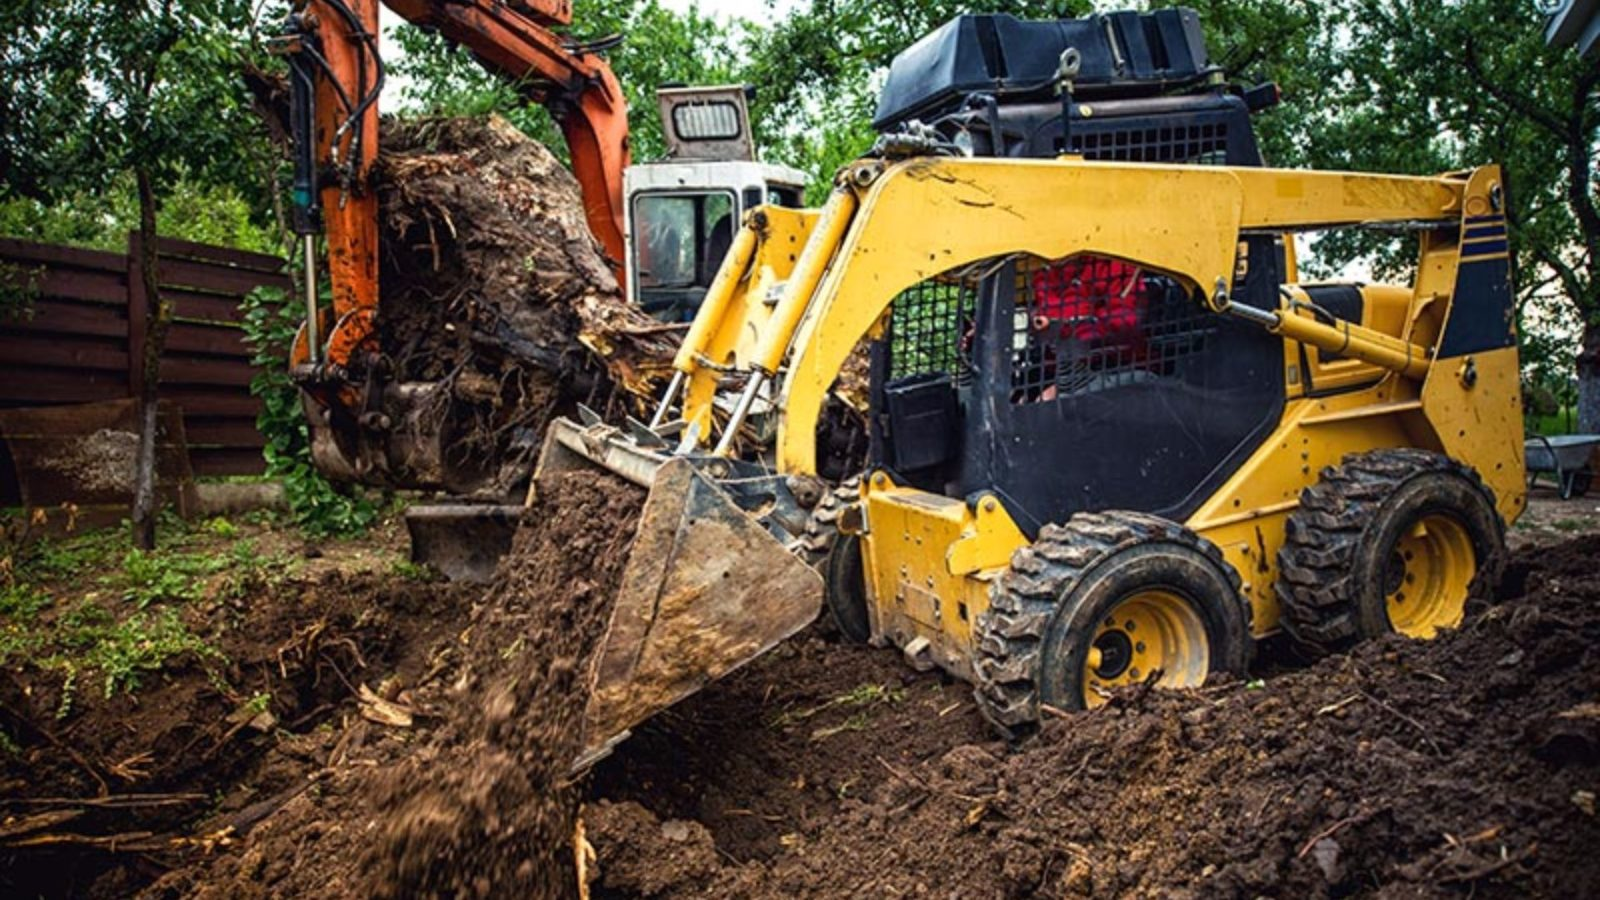 Local Demolition Contractors - Trenching and Excavation Safety